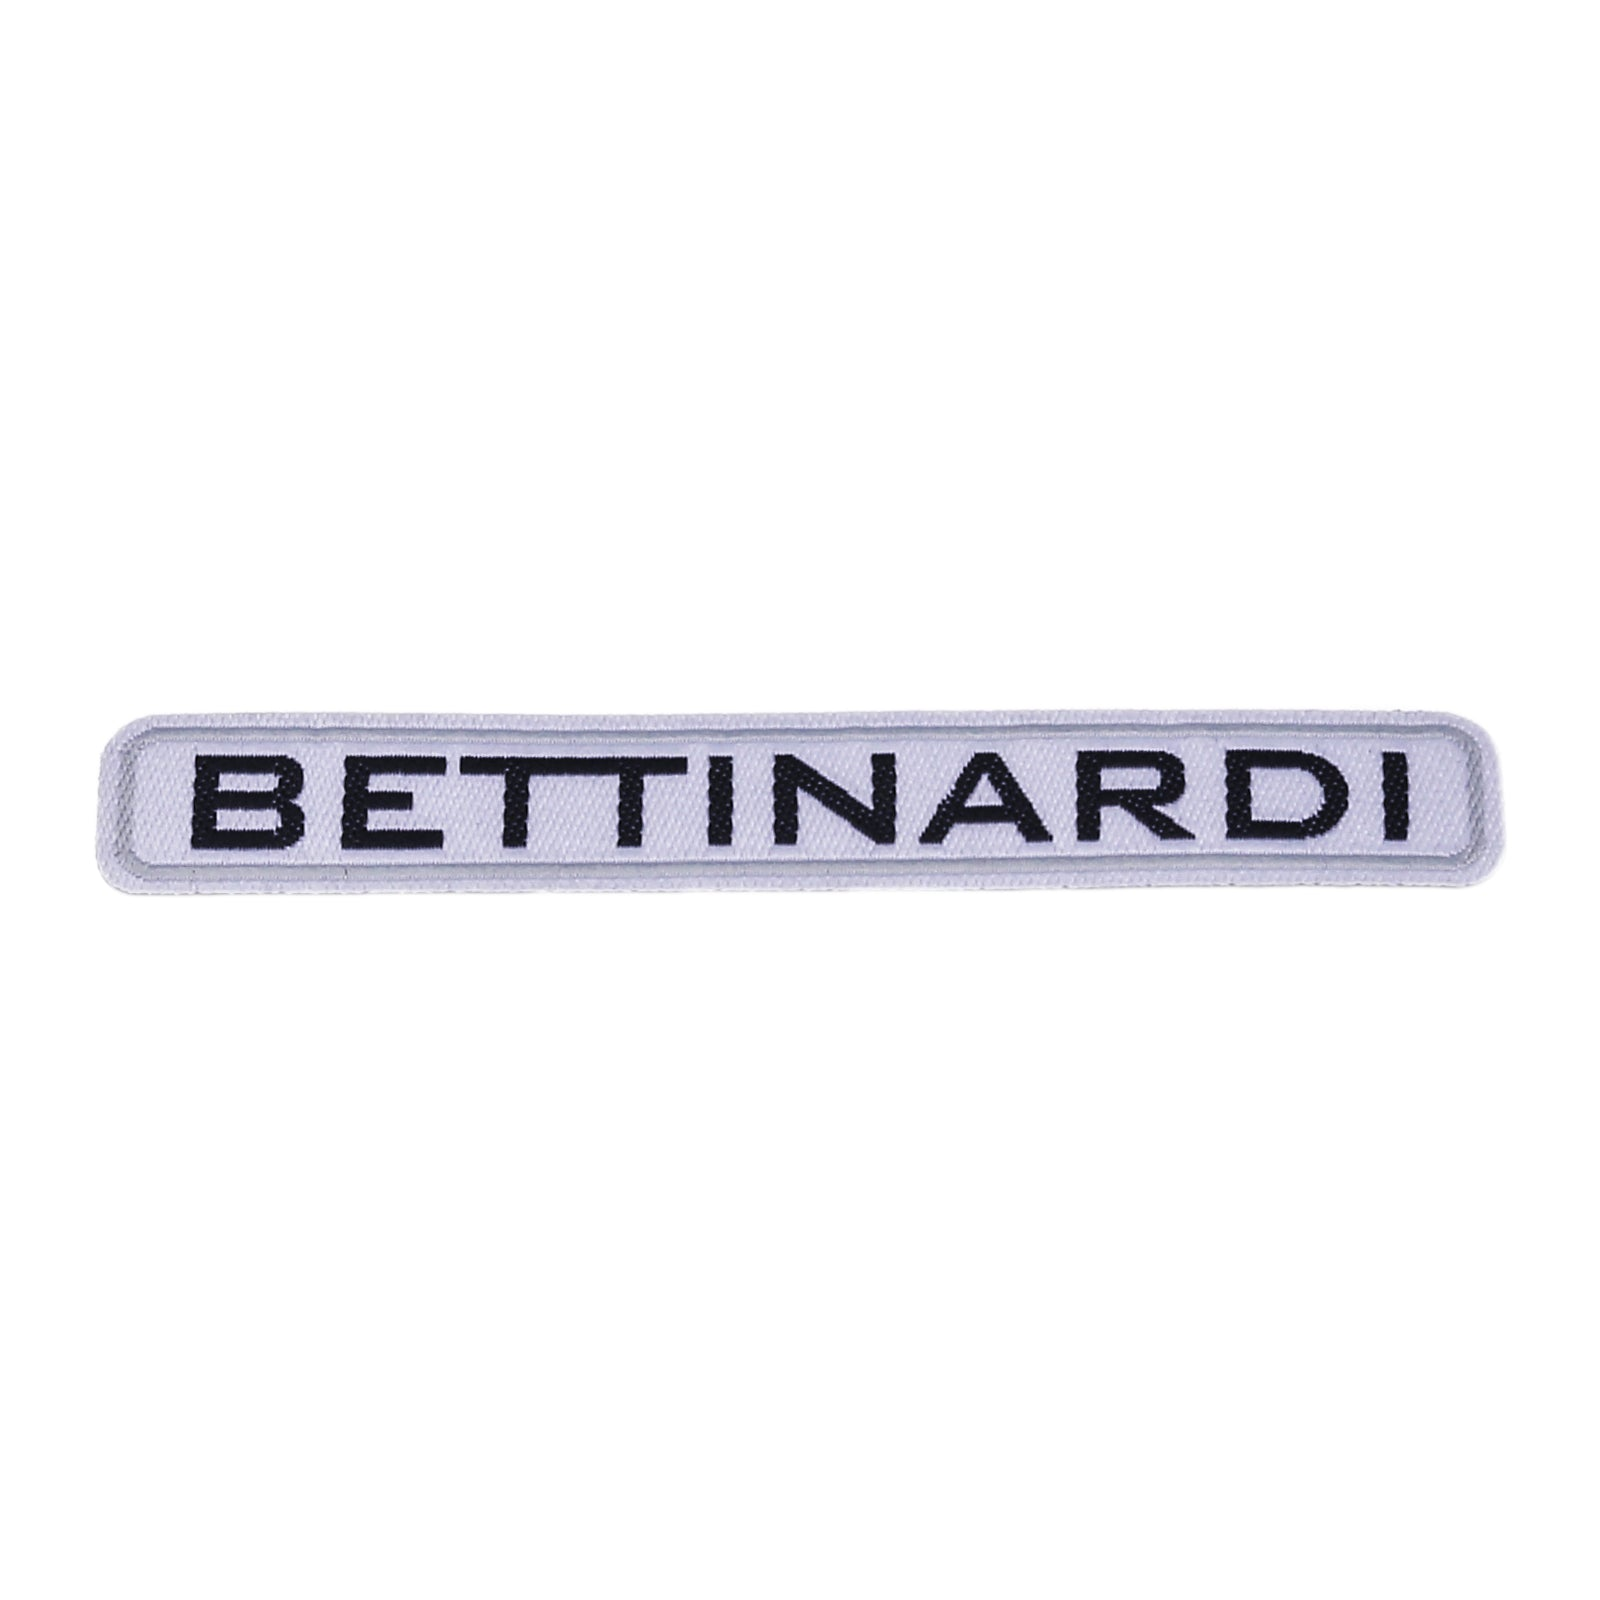 Long Bettinardi White & Black Patch - BettinardiGolf